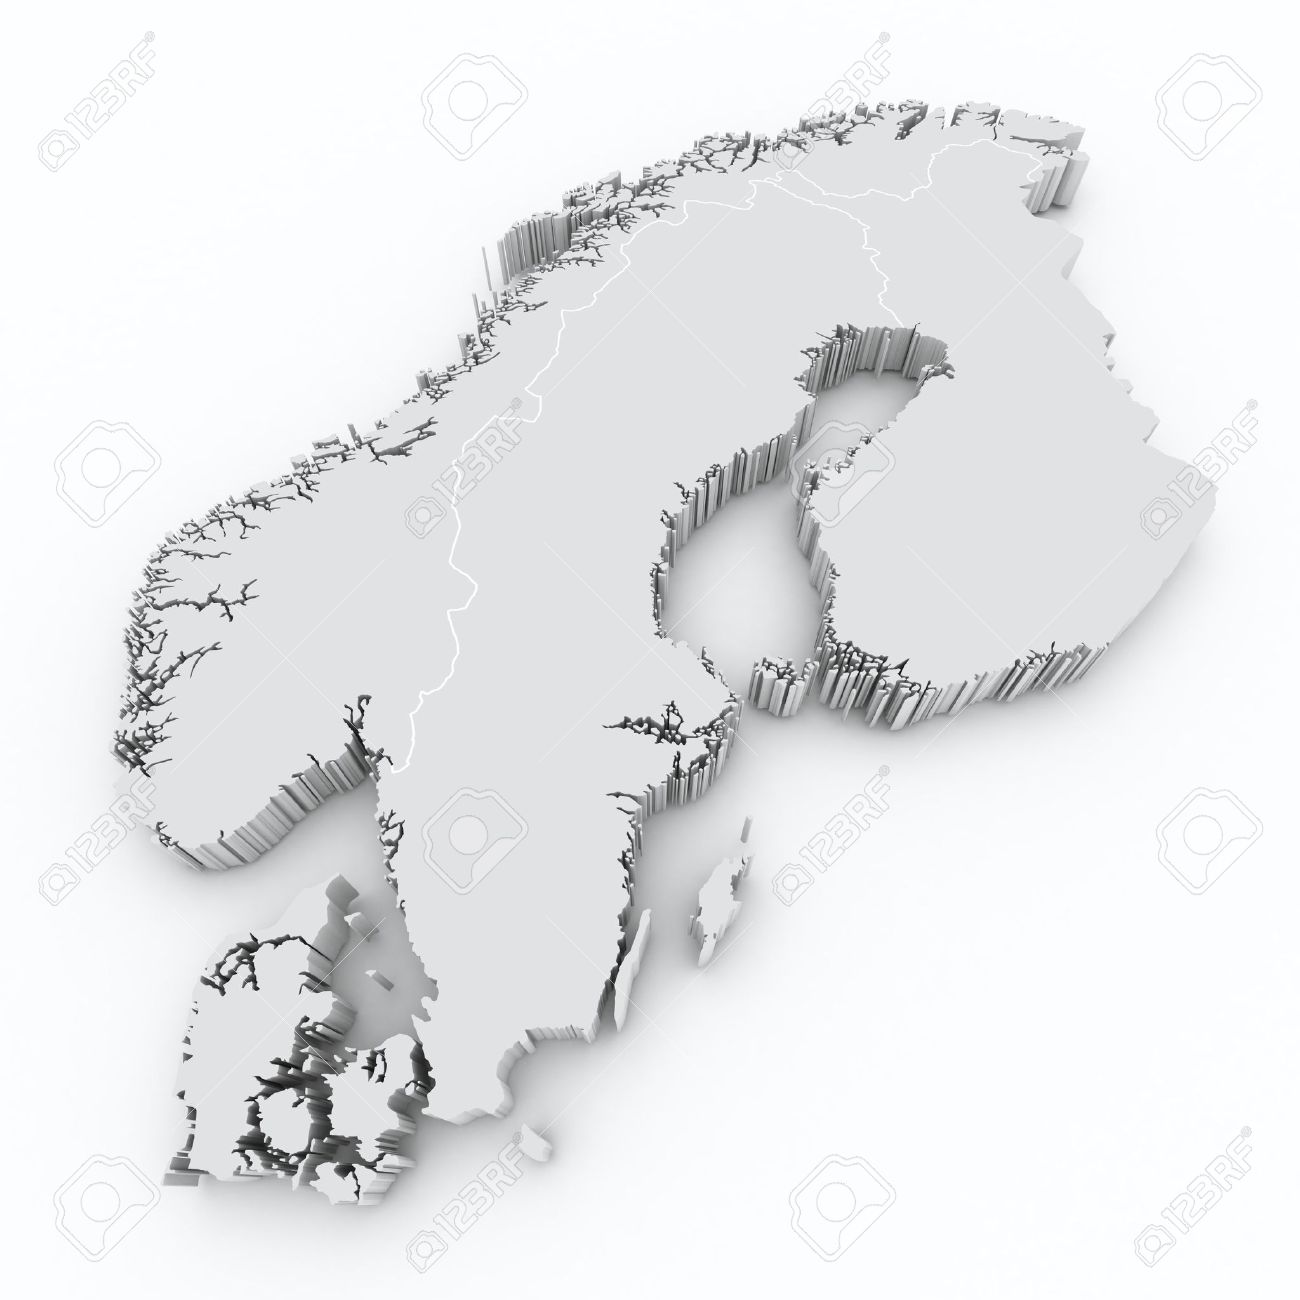 Scandinavia D Map Stock Photo Picture And Royalty Free Image - Map of scandinavia